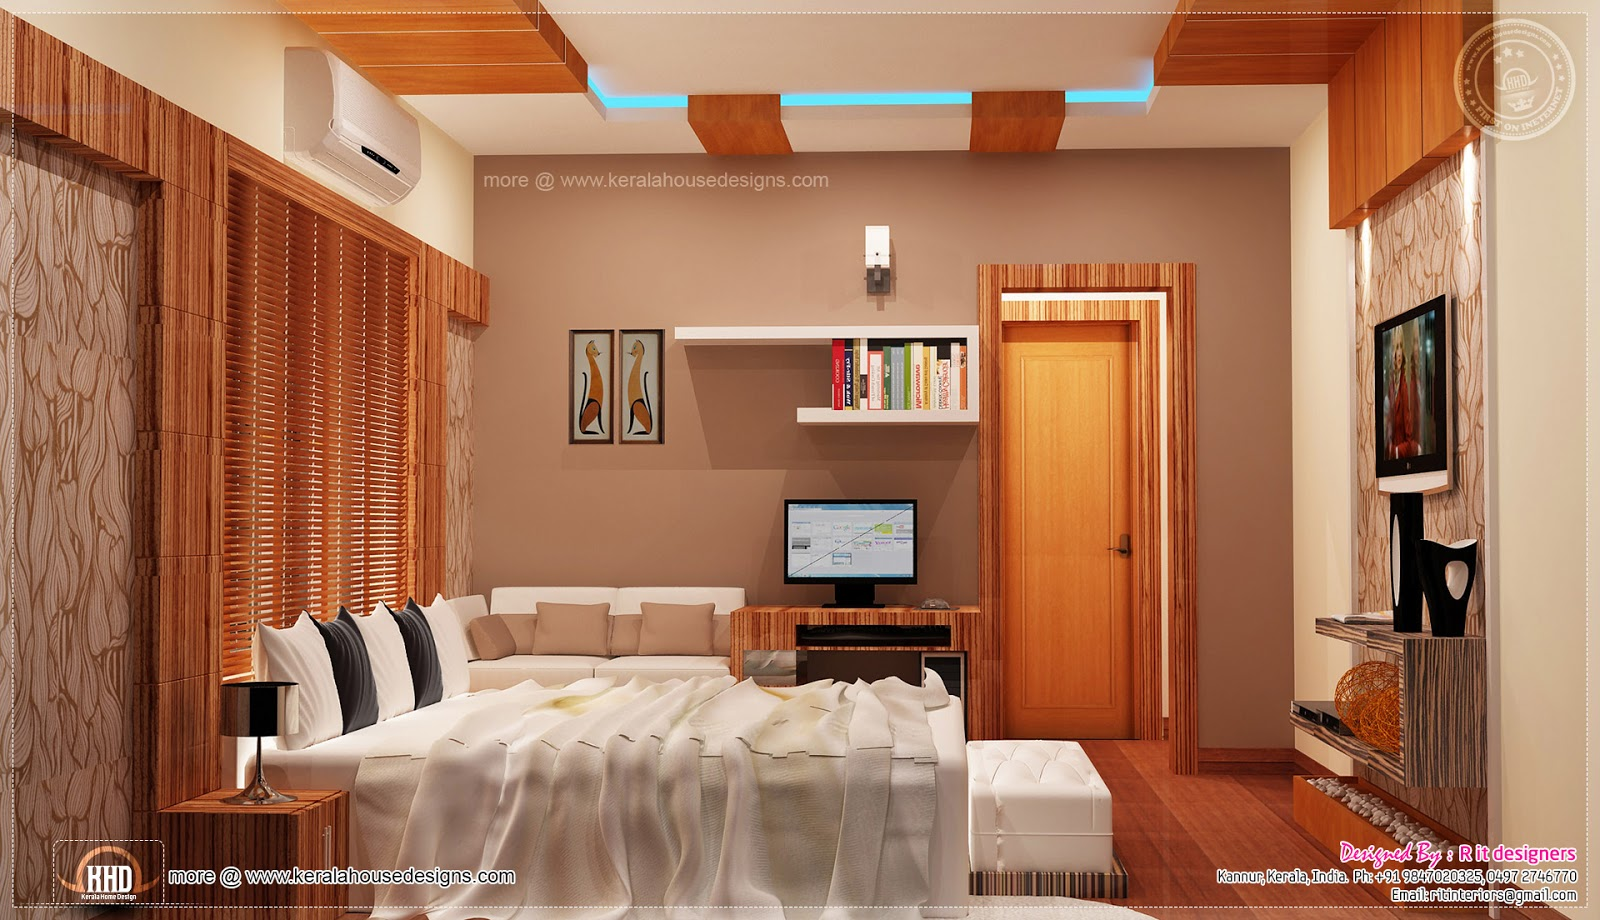 Home interior designs by rit designers kerala home for Online house interior design